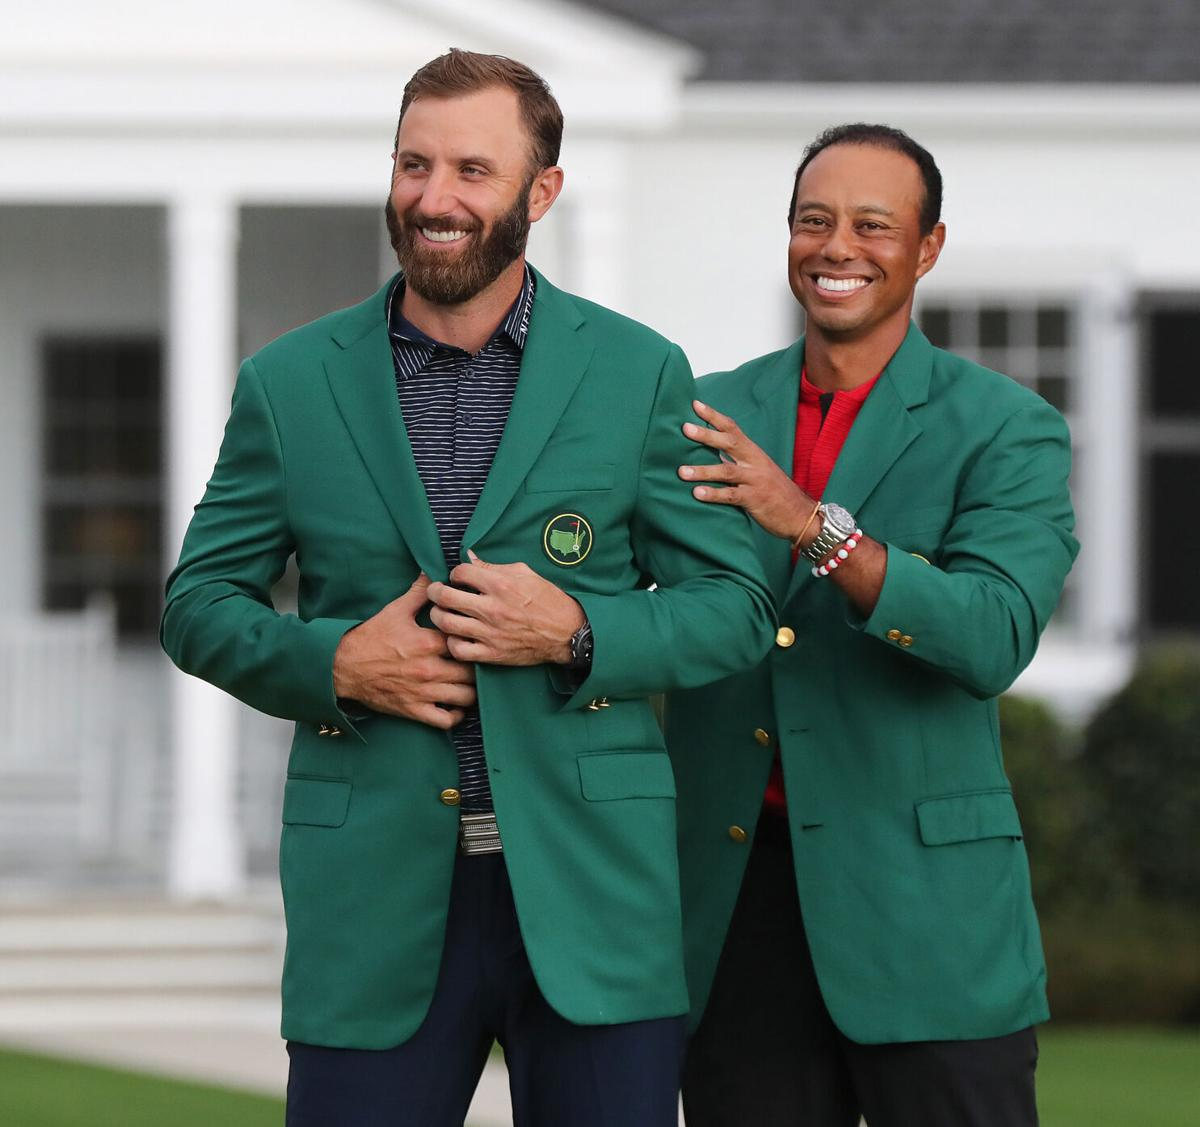 Tiger Woods presents Dustin Johnson with his green jacket after he won the Masters at Augusta National Golf Club on Sunday, November 15, 2020, in Augusta, Georgia.